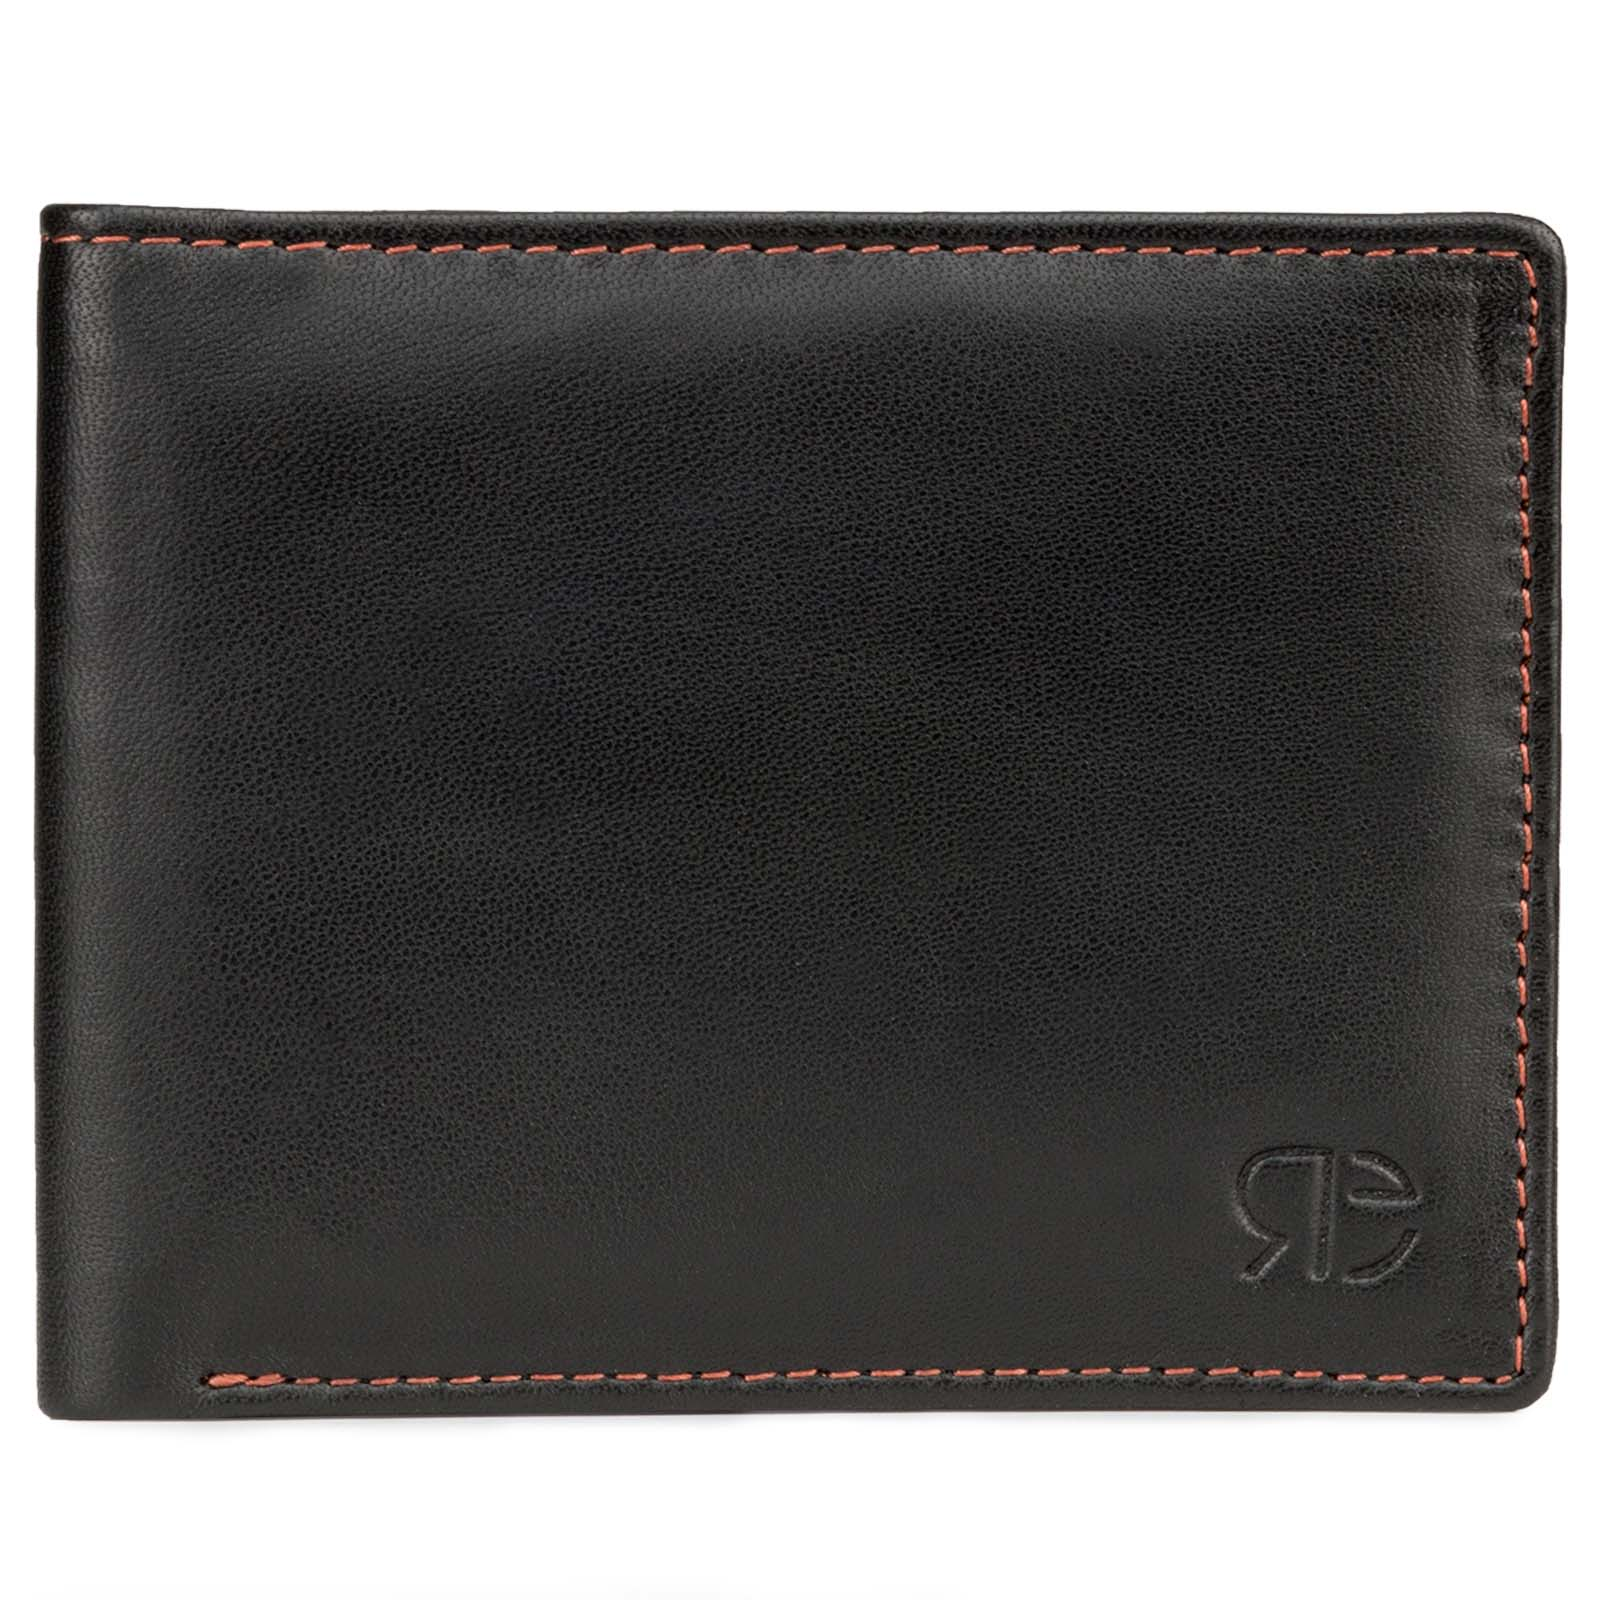 Black Plain Ultra-Soft Leather Mens Wallet